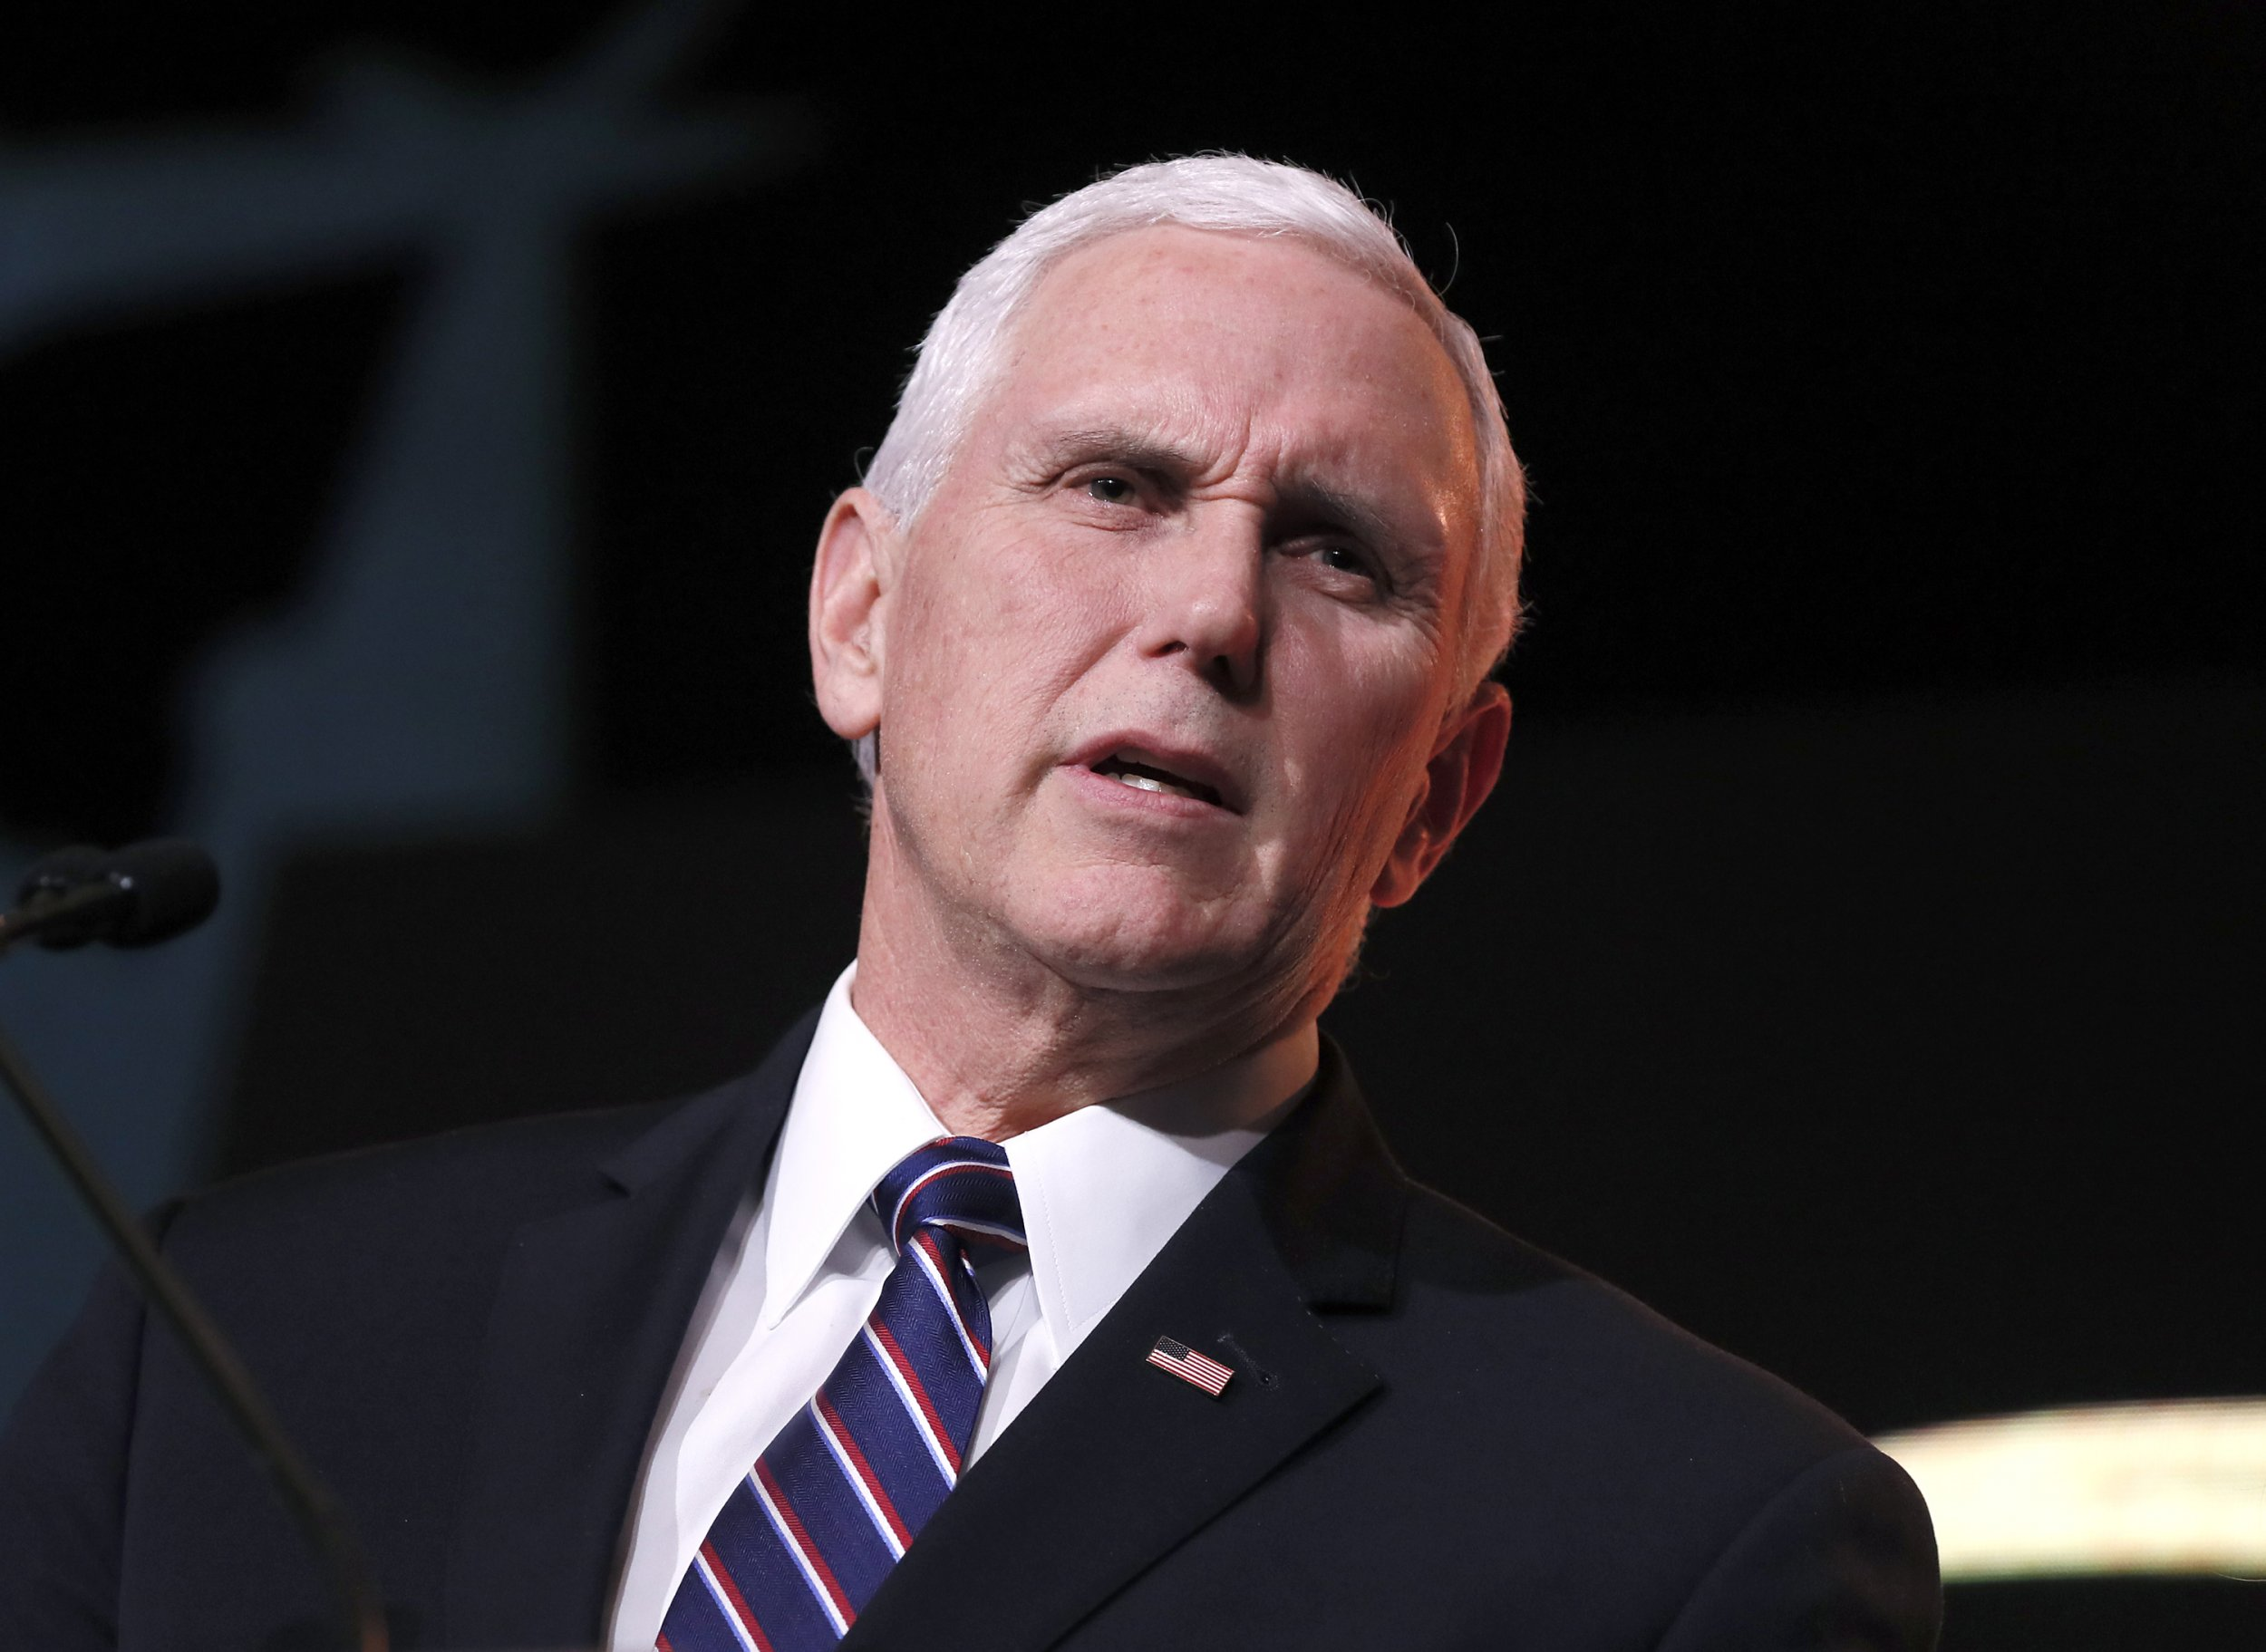 Students and Faculty Walk Out of Vice President Mike Pence's Commencement Address at Taylor University